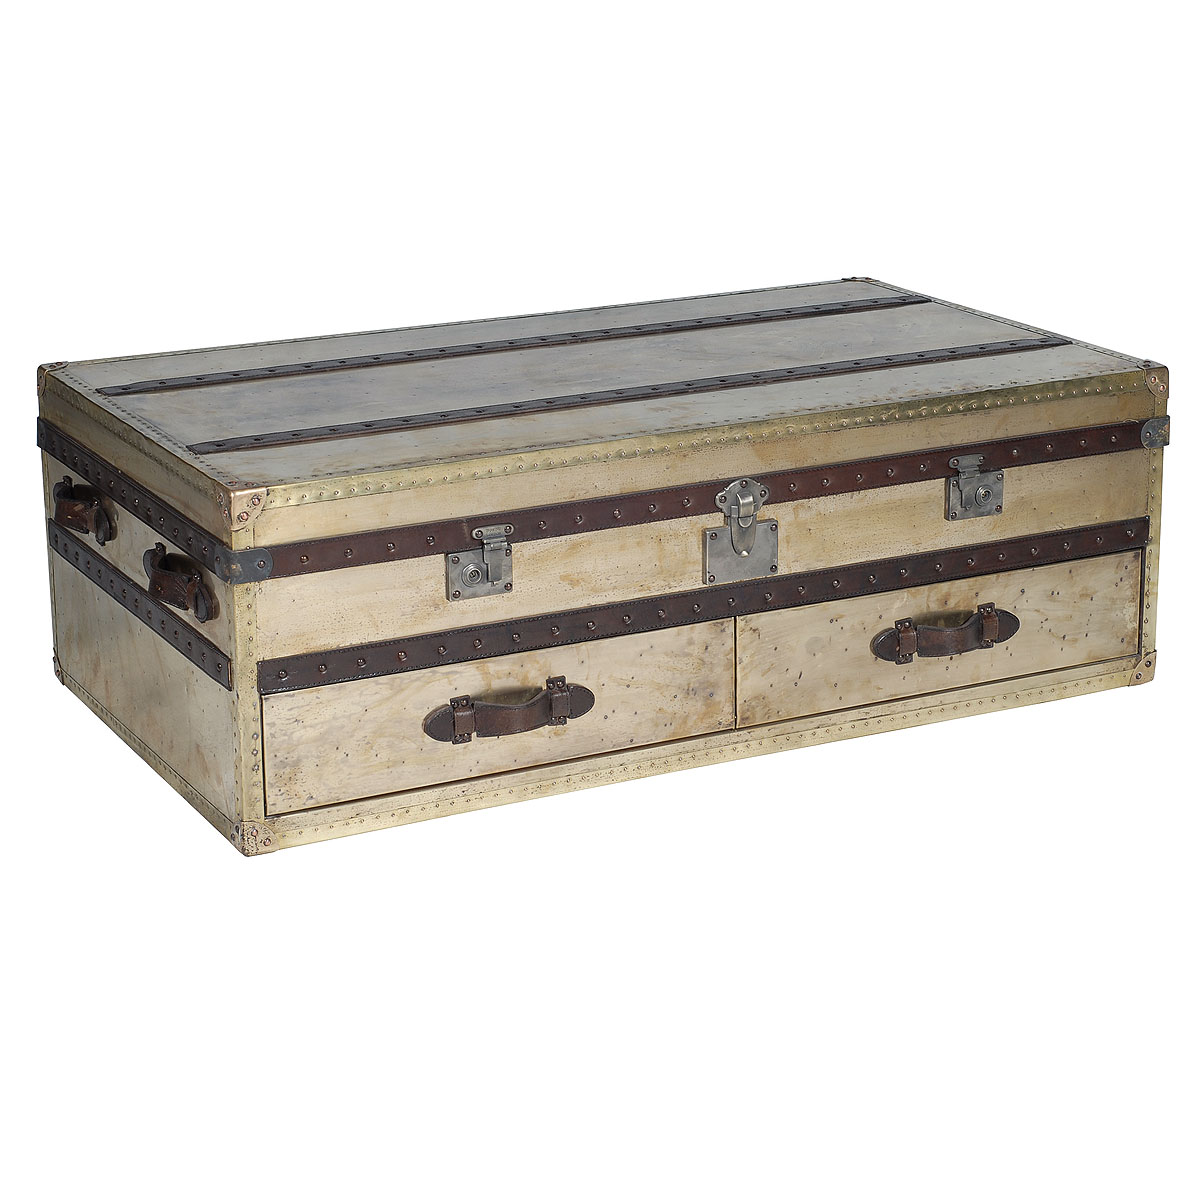 1 870 metal coffee table trunk 201 795 3448 Metal chest coffee table